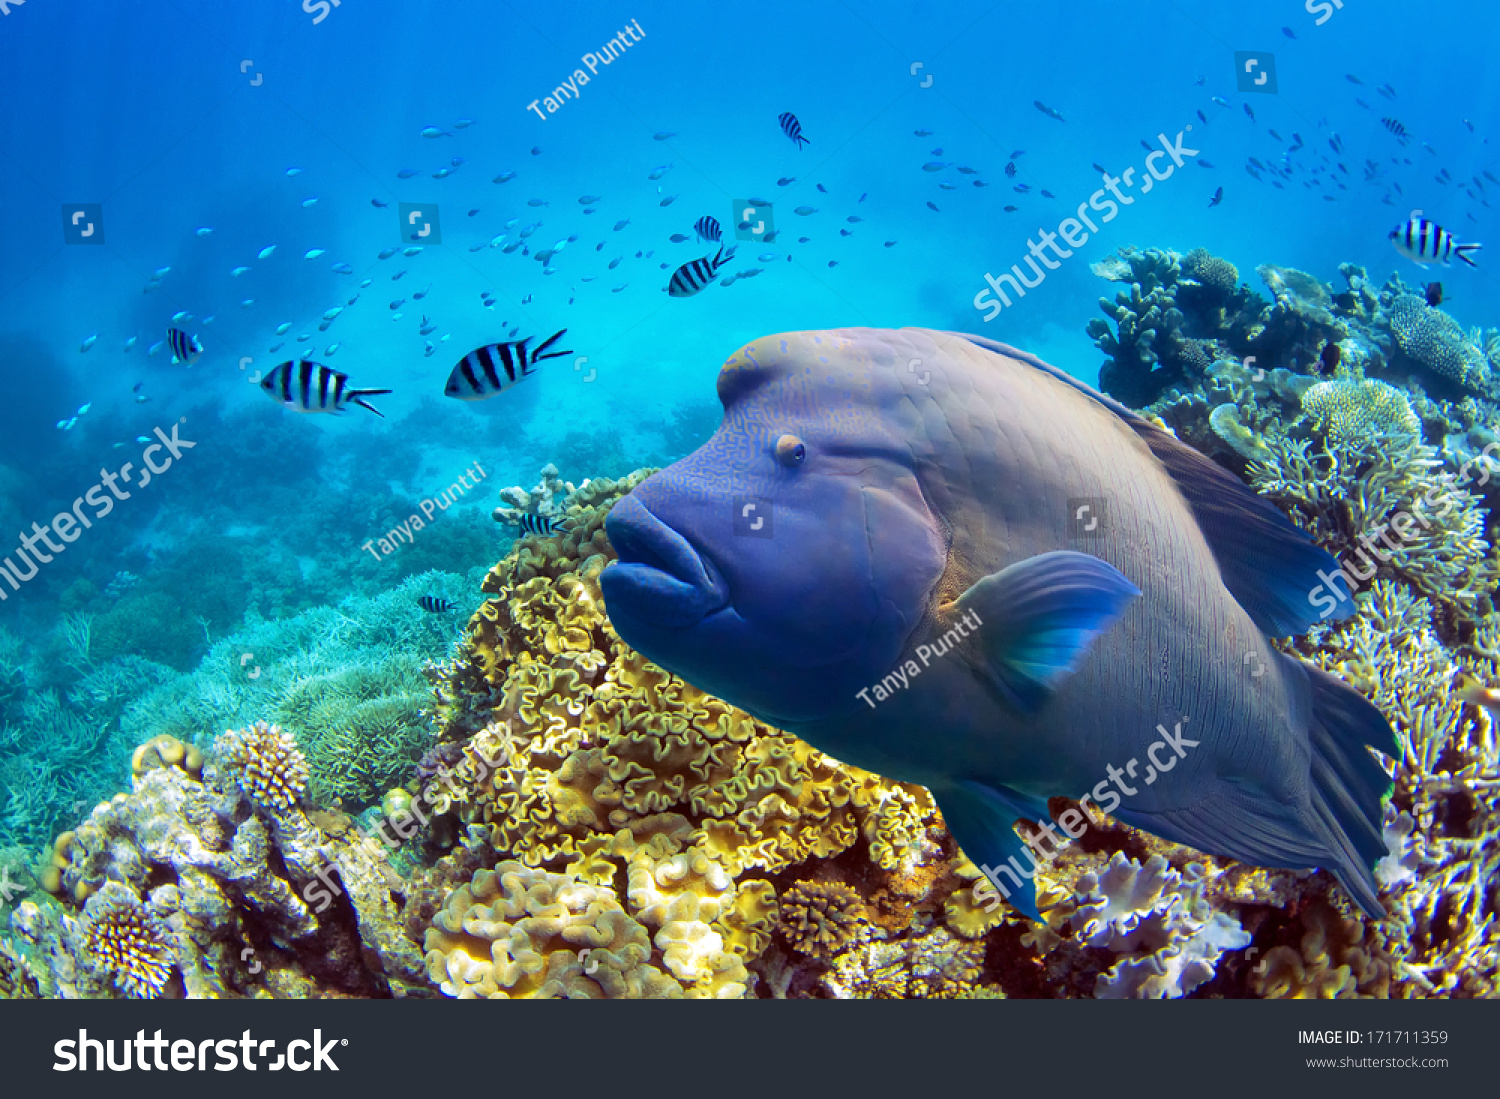 Great barrier reef fish stock photo 171711359 shutterstock for Great barrier reef fish